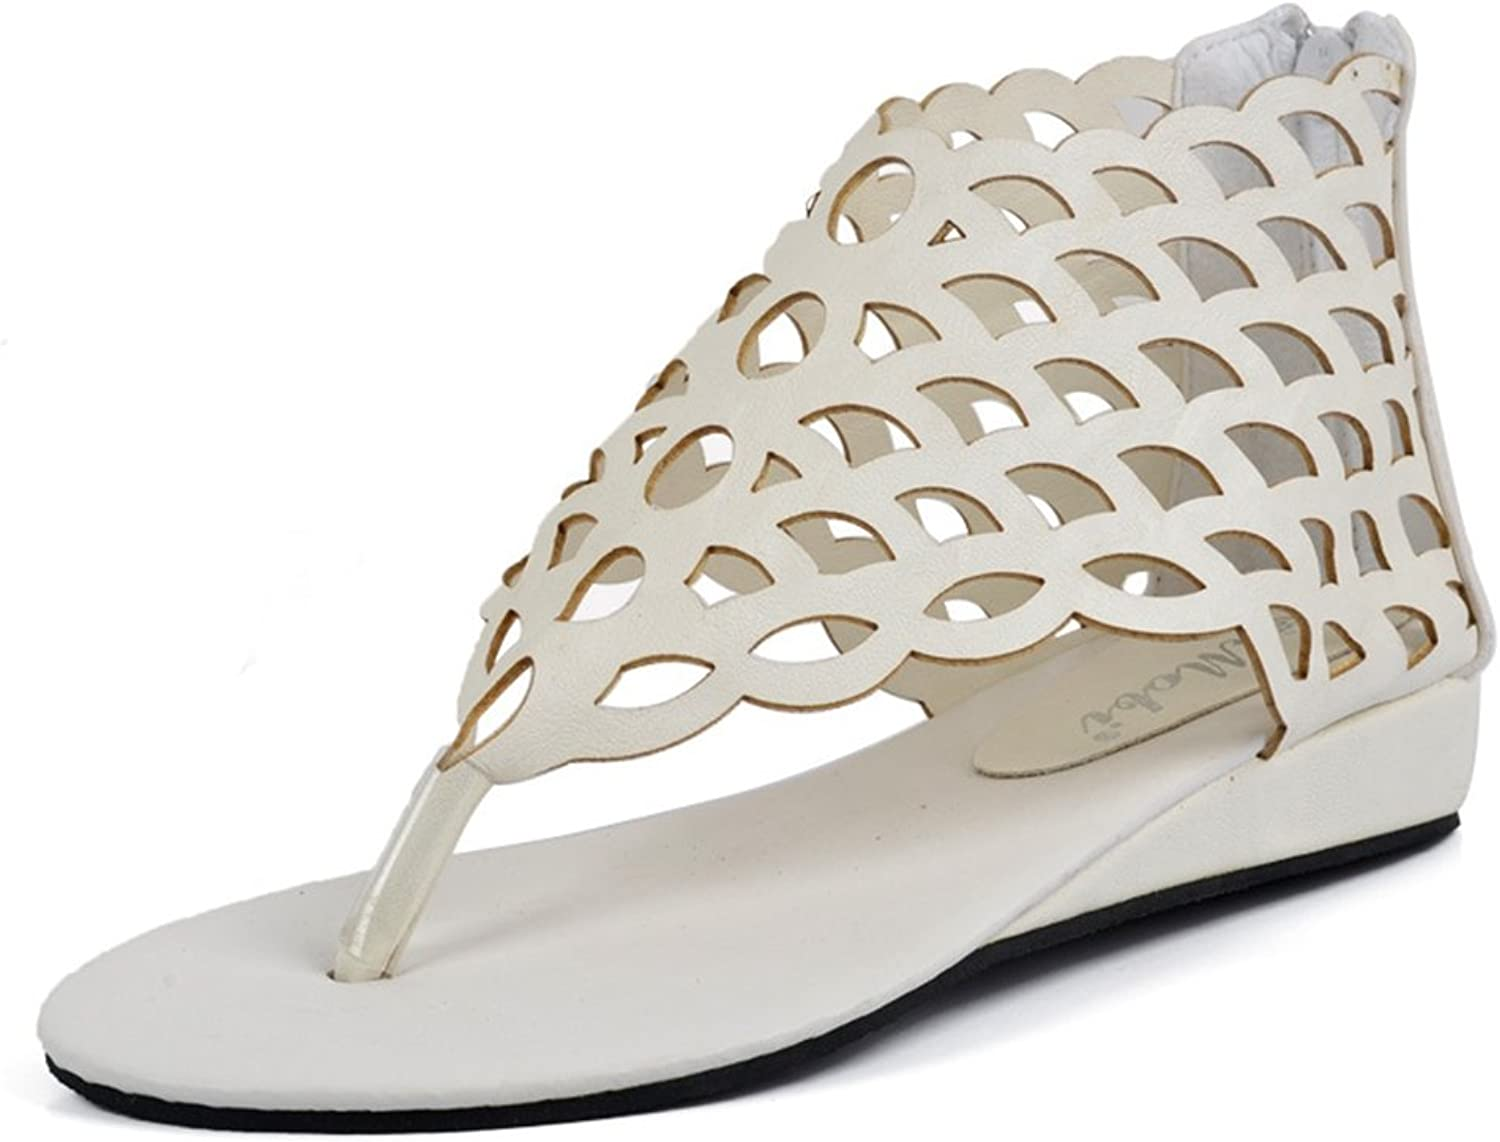 CYBLING Womens Flats Sandals Fashion T-Strap Bohemian Thong Leather Summer Dress shoes